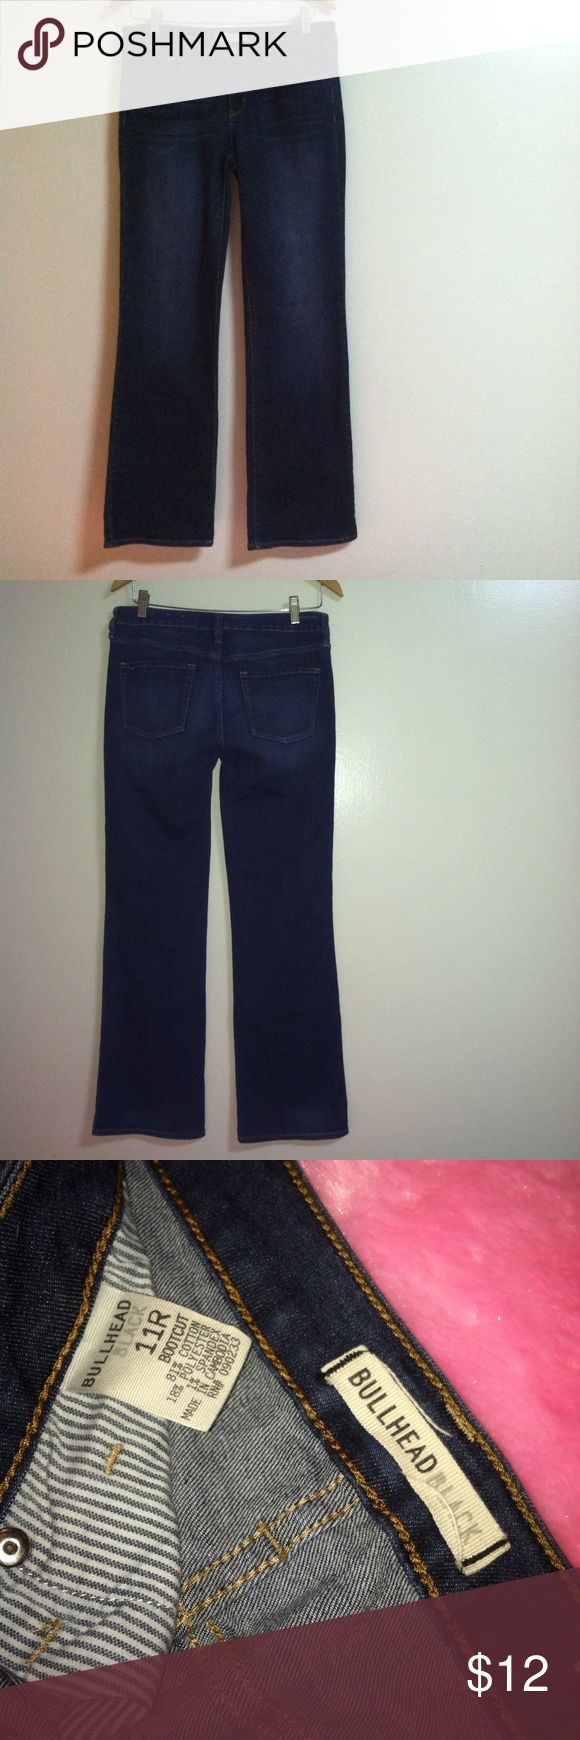 Bullhead Black bootcut jeans Bullhead Black bootcut jeans in a dark blue wash. Very good condition. Size 11 Regular Juniors. Approximate measurements laying flat- Waist 16 in, Inseam 32 in, Leg opening 9 in. Bullhead Jeans Boot Cut